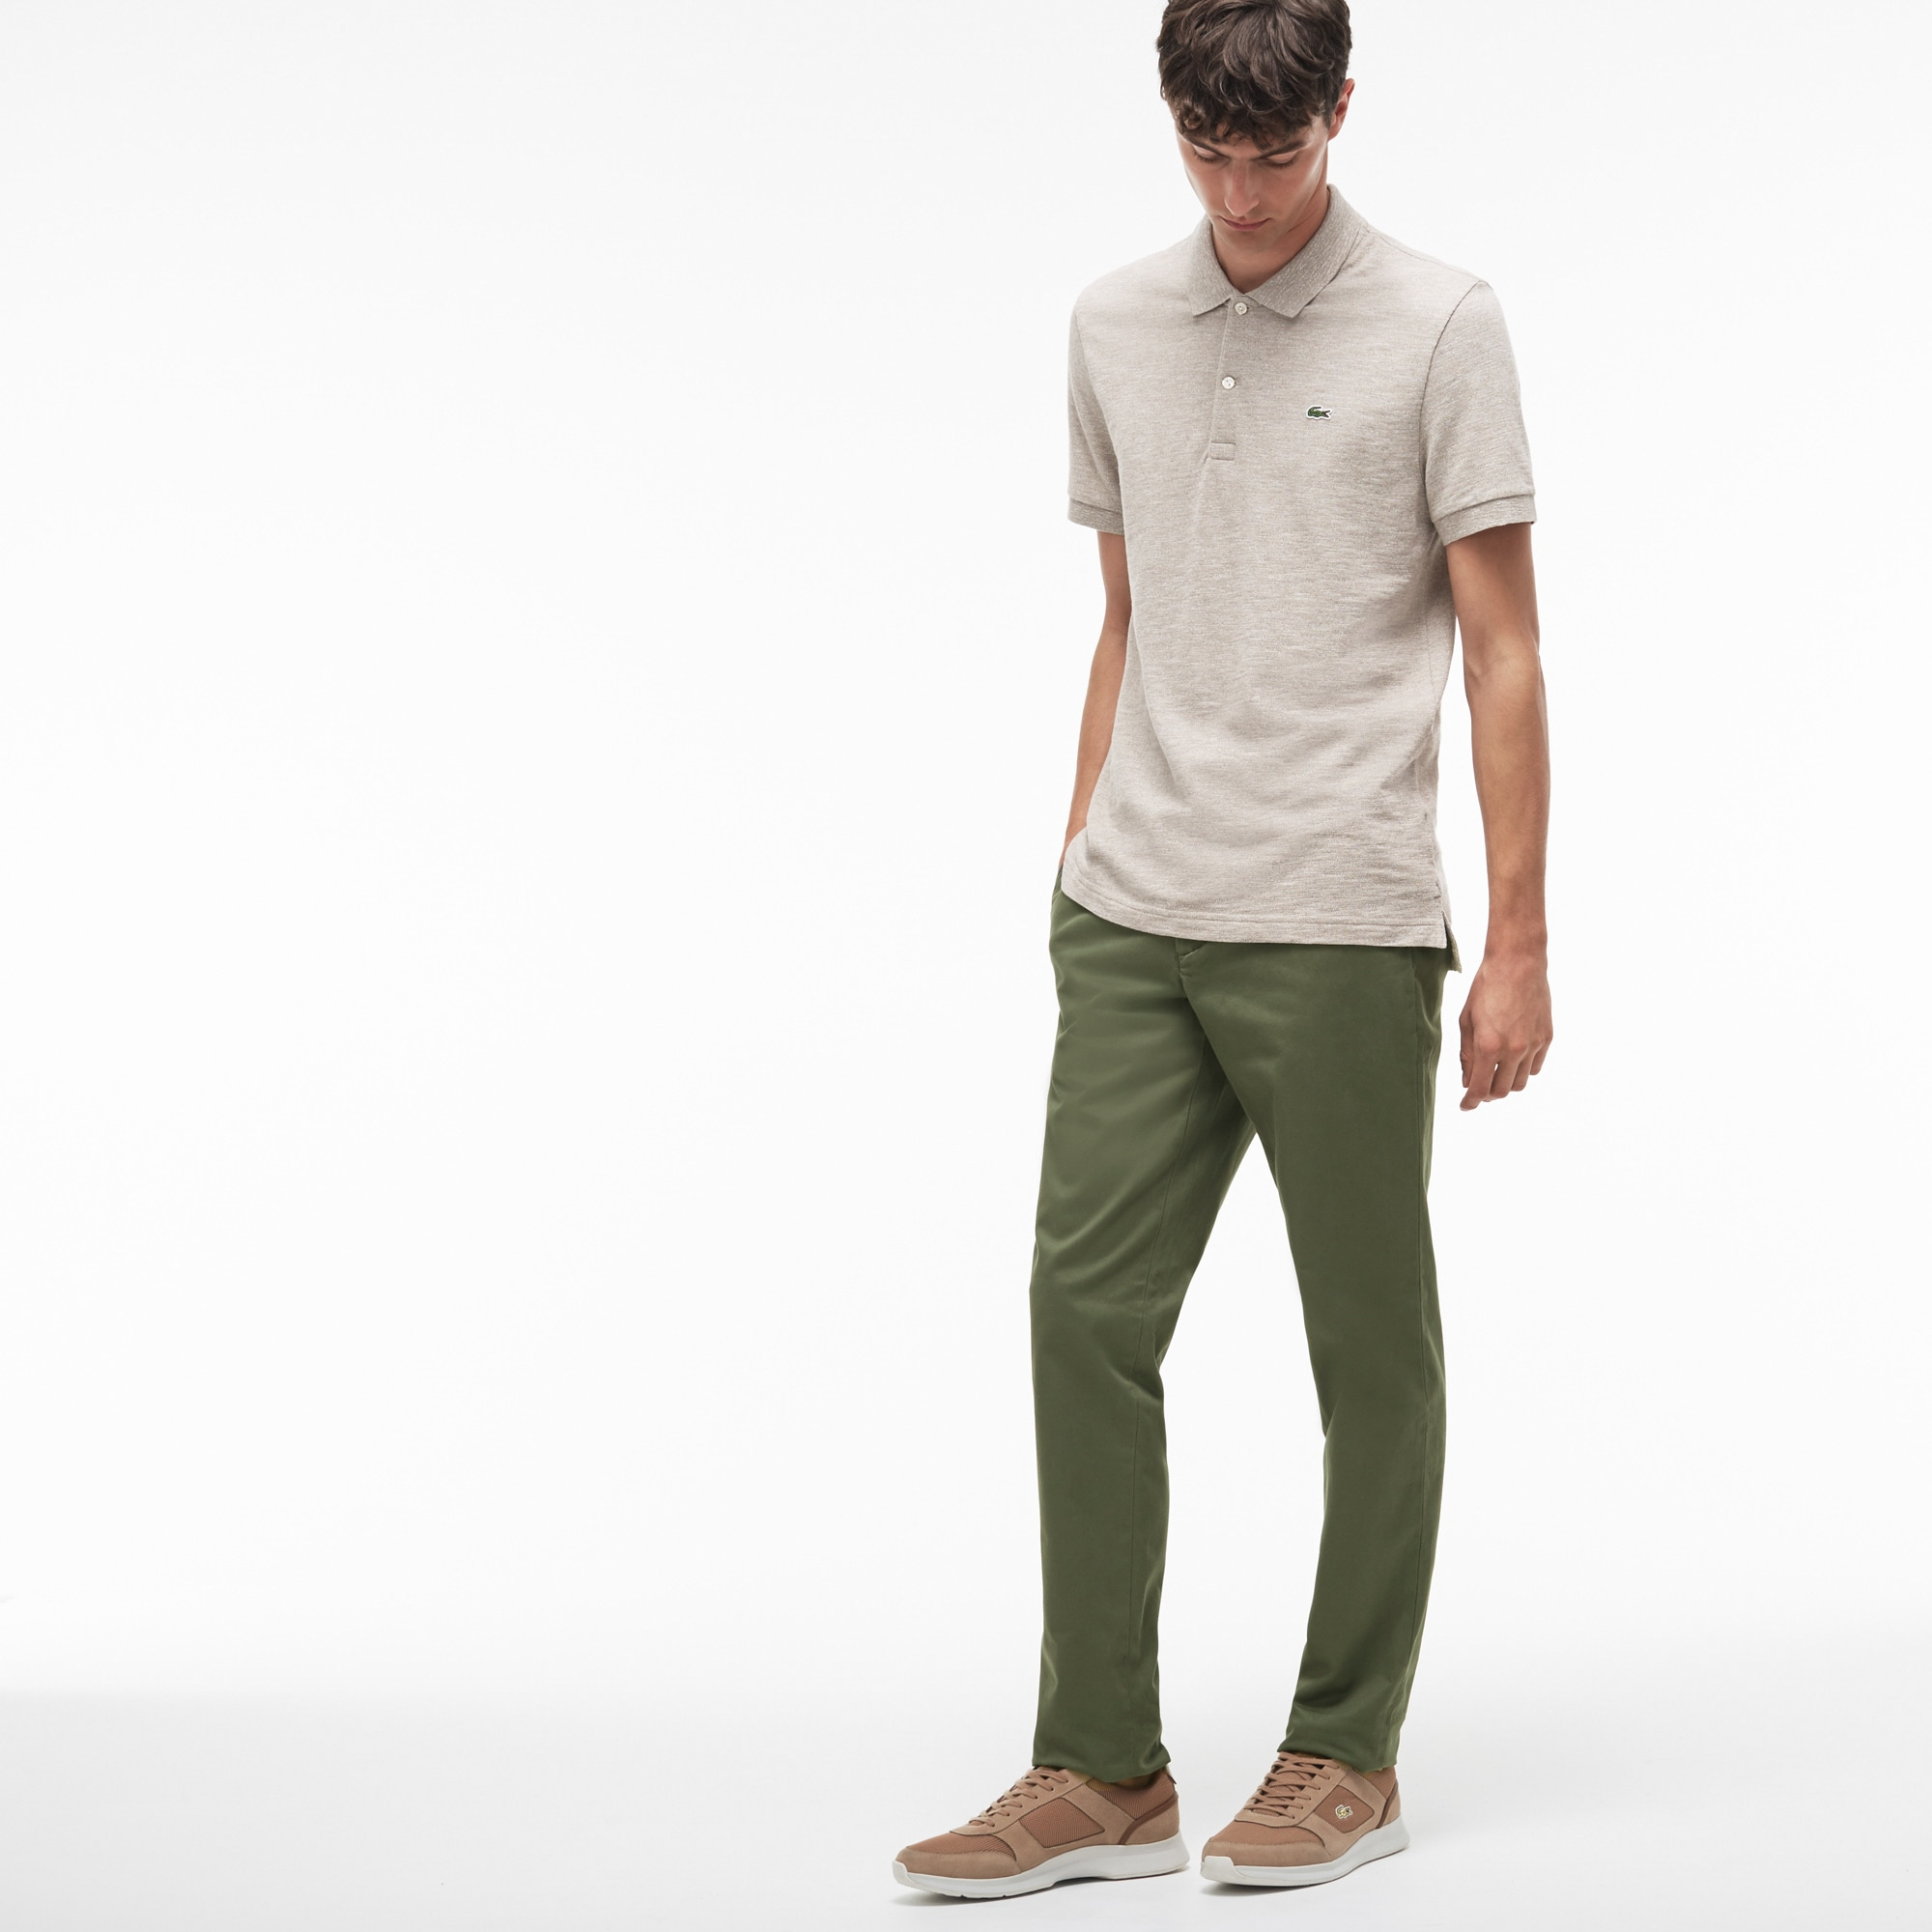 Calças chino slim fit em gabardina stretch unicolor